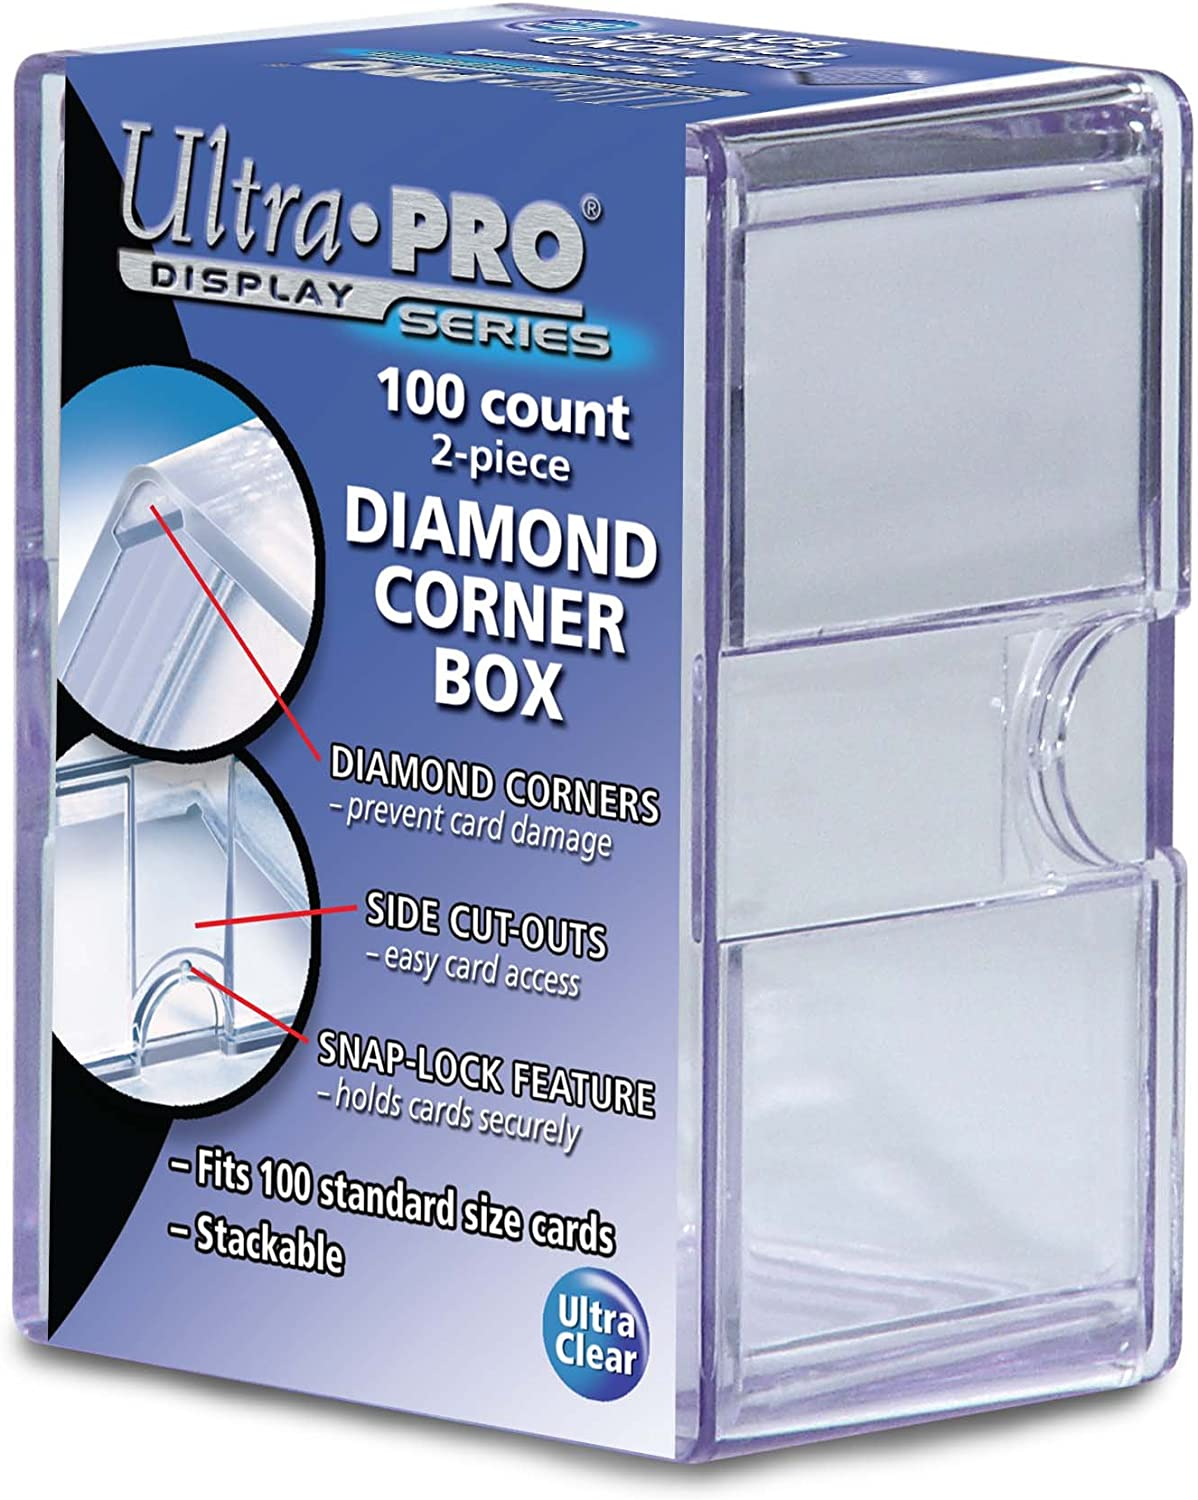 CASE OF 50 400 Count Trading Card Storage Boxes